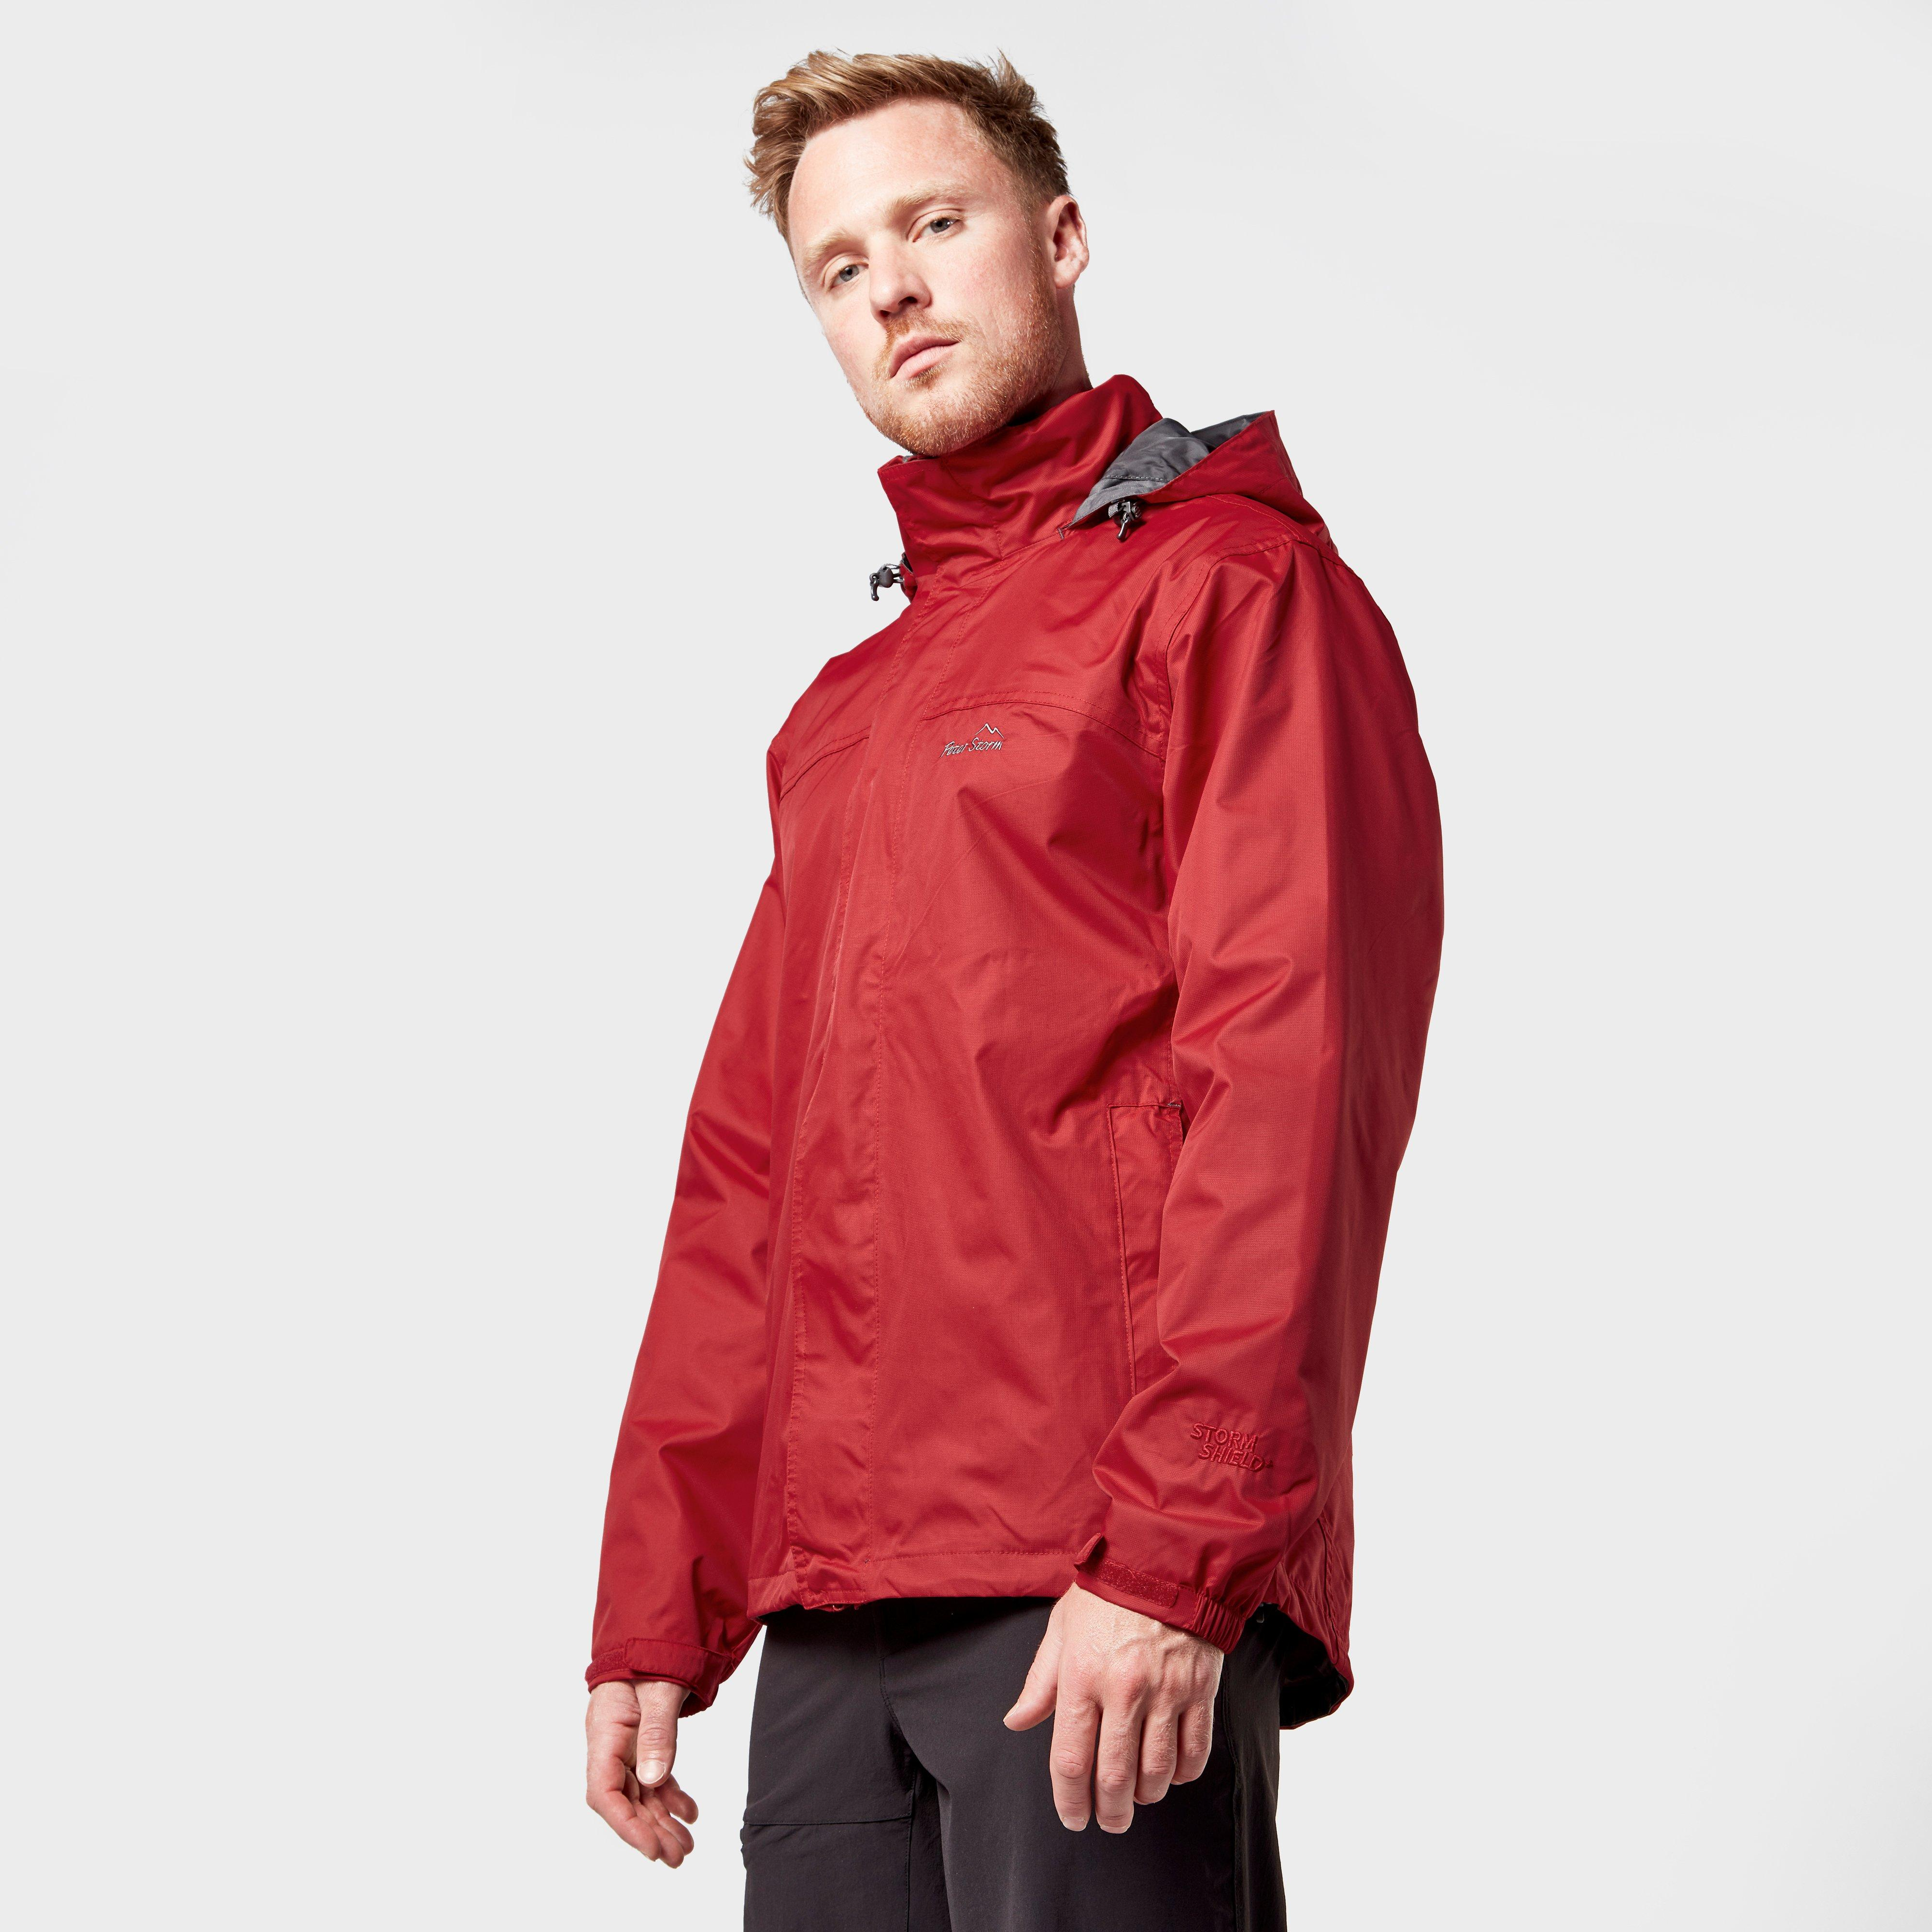 Peter Storm Men's Storm Jacket, Red